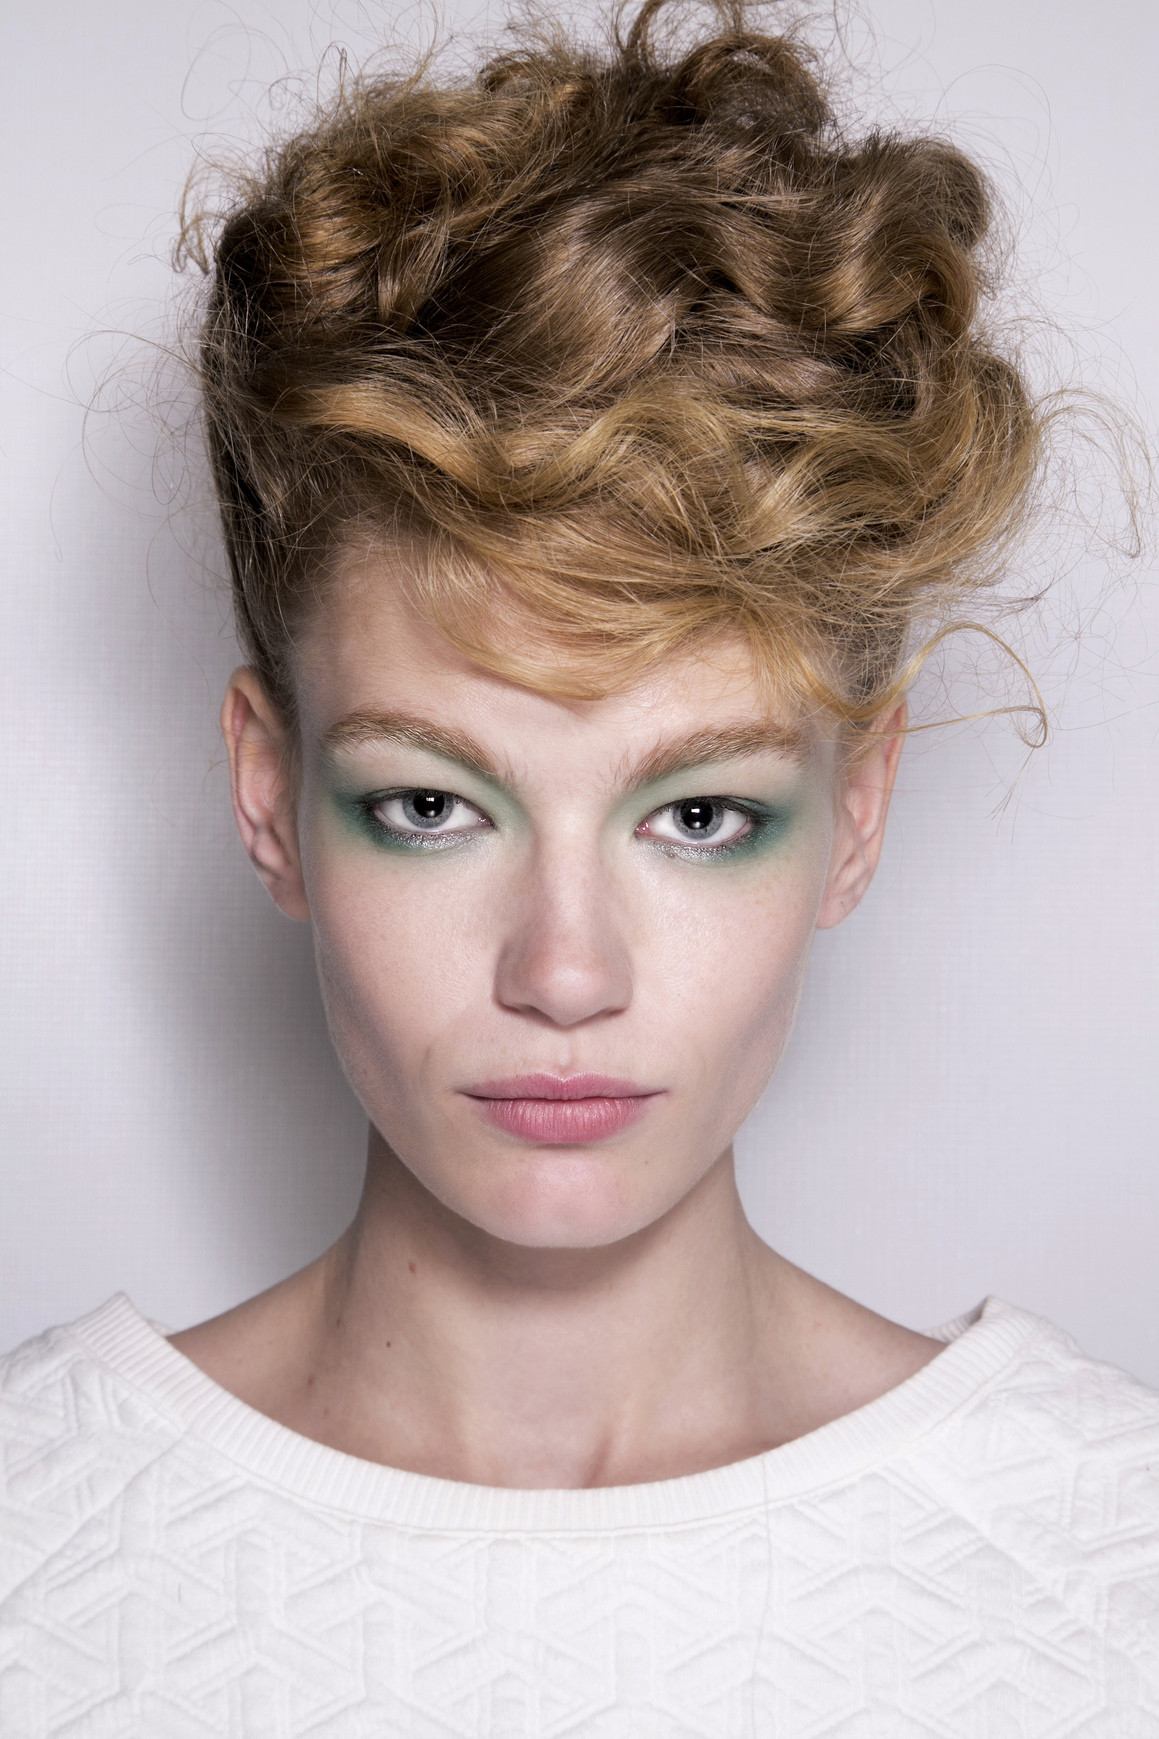 Short Cool Hairstyles  Cool Hairstyles You Can Do at Home